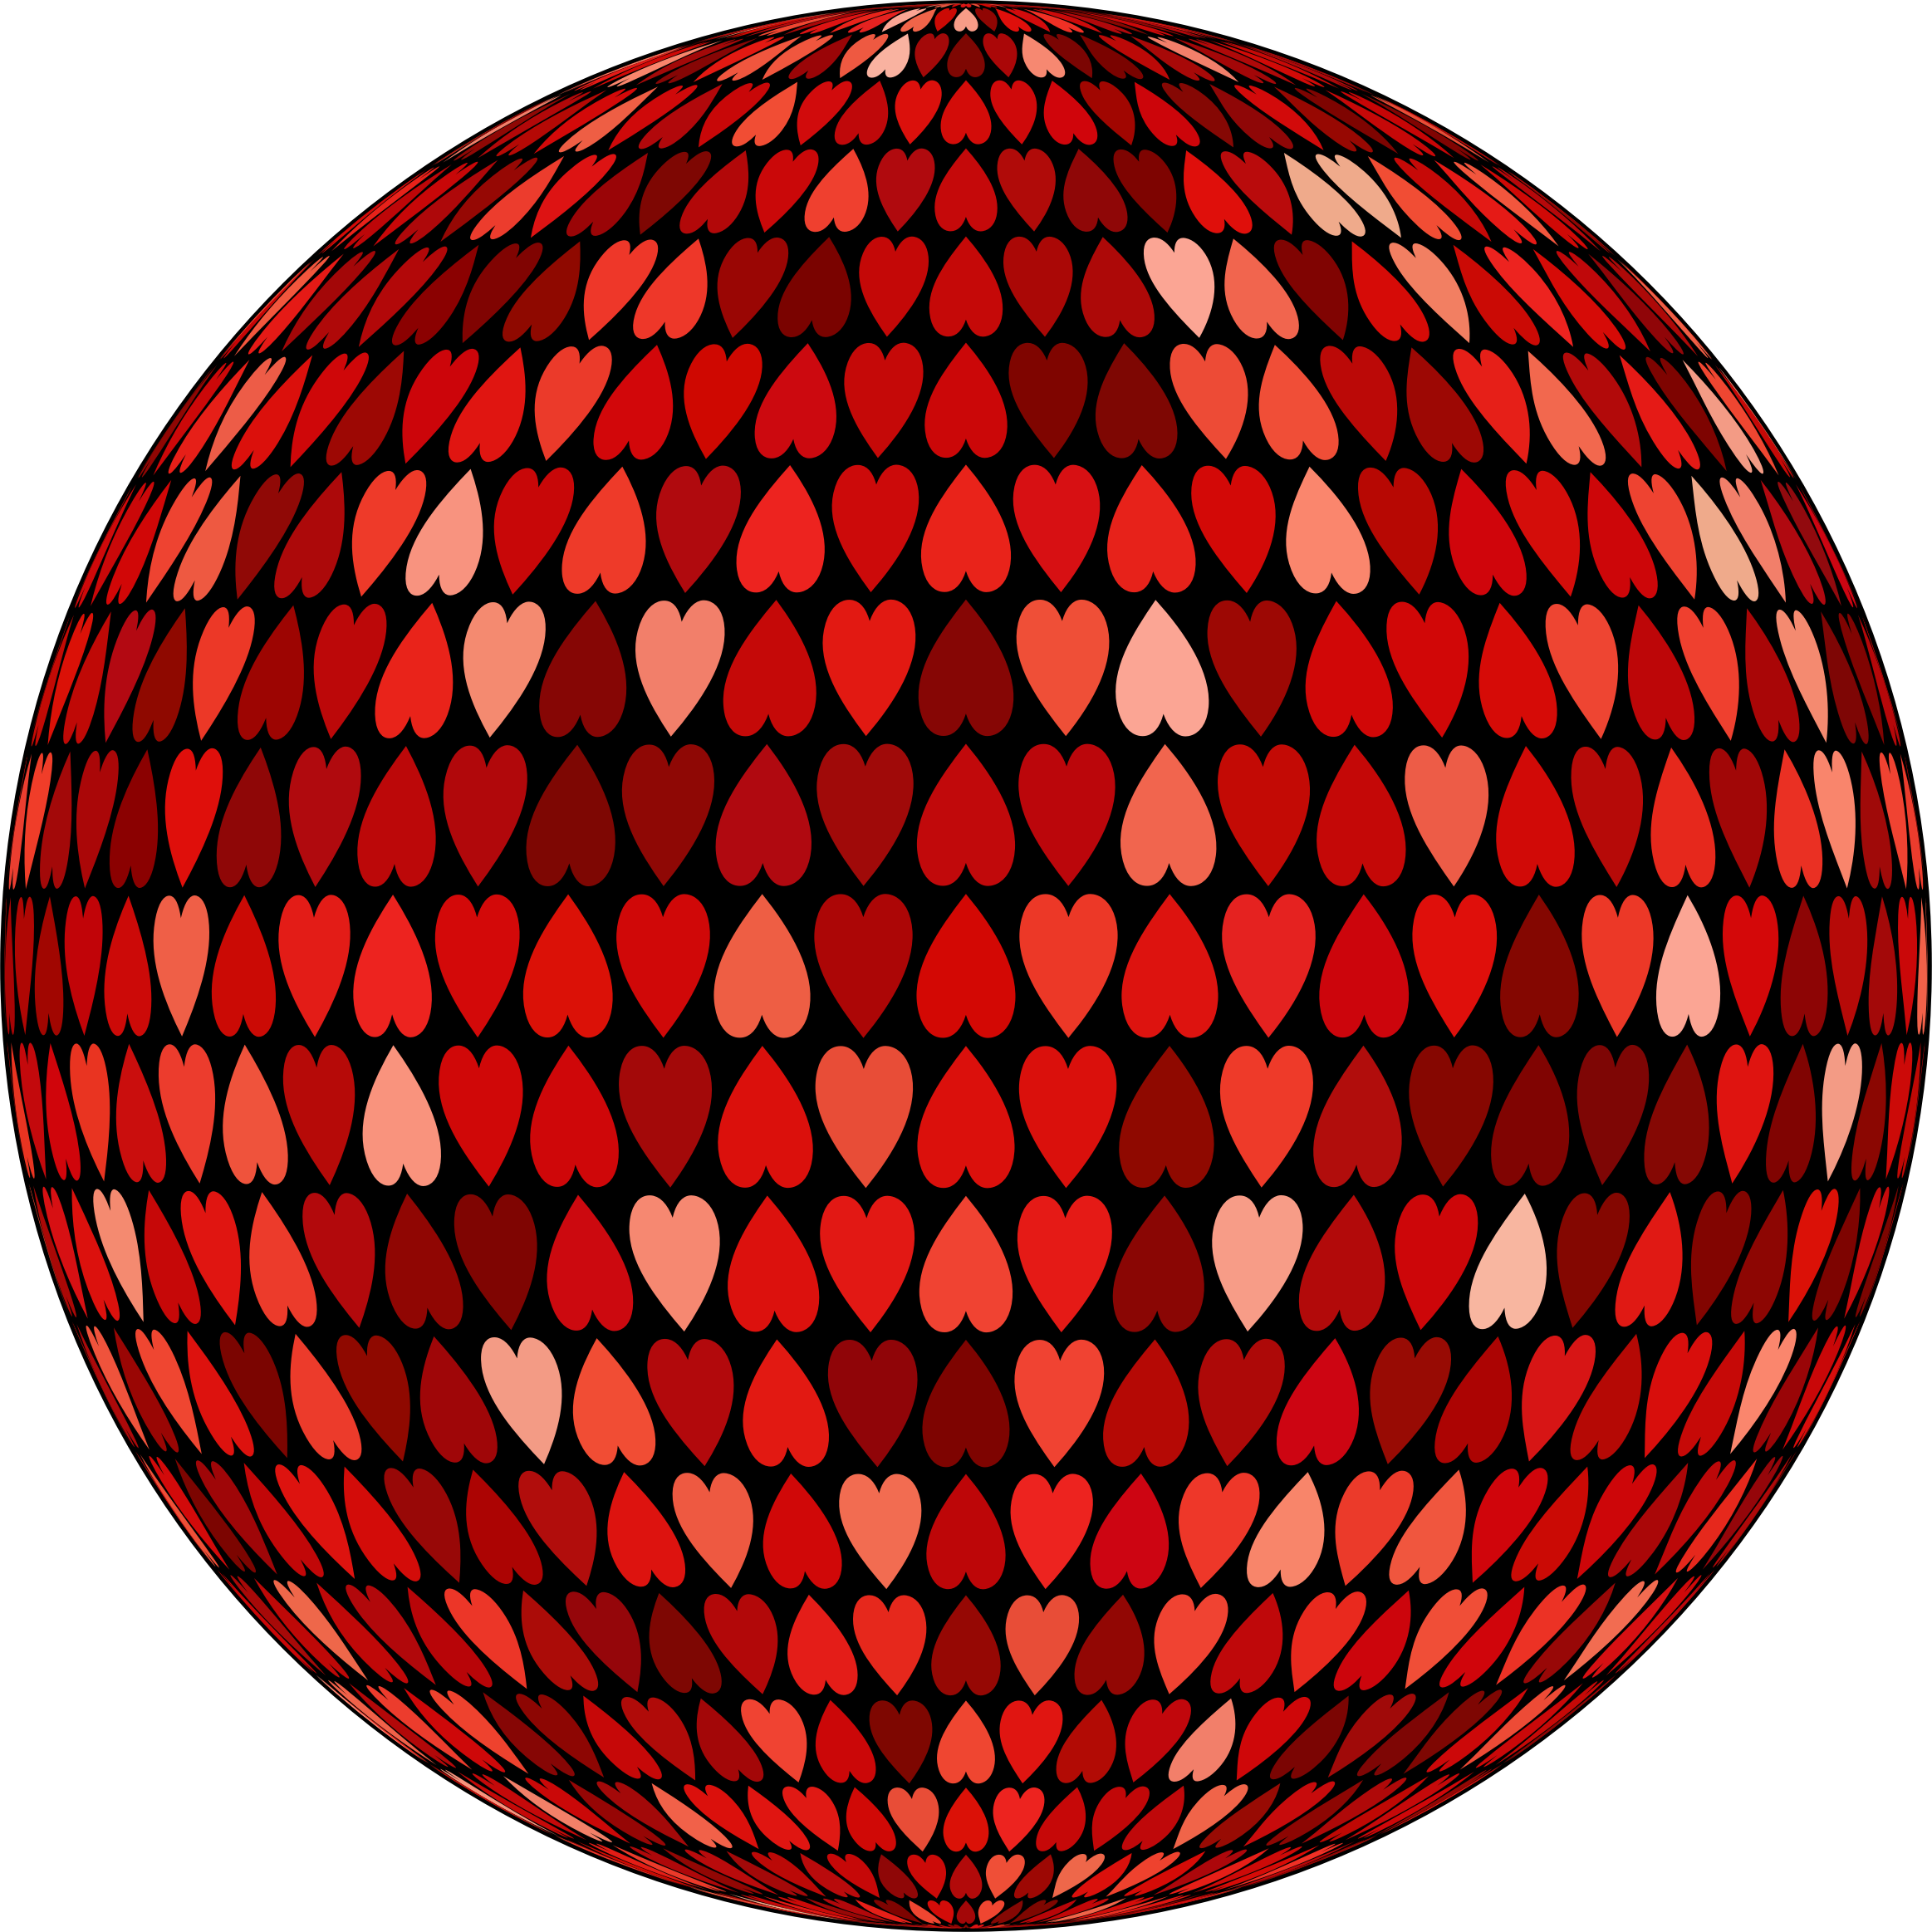 Prismatic Alternating Hearts Sphere 5 by GDJ